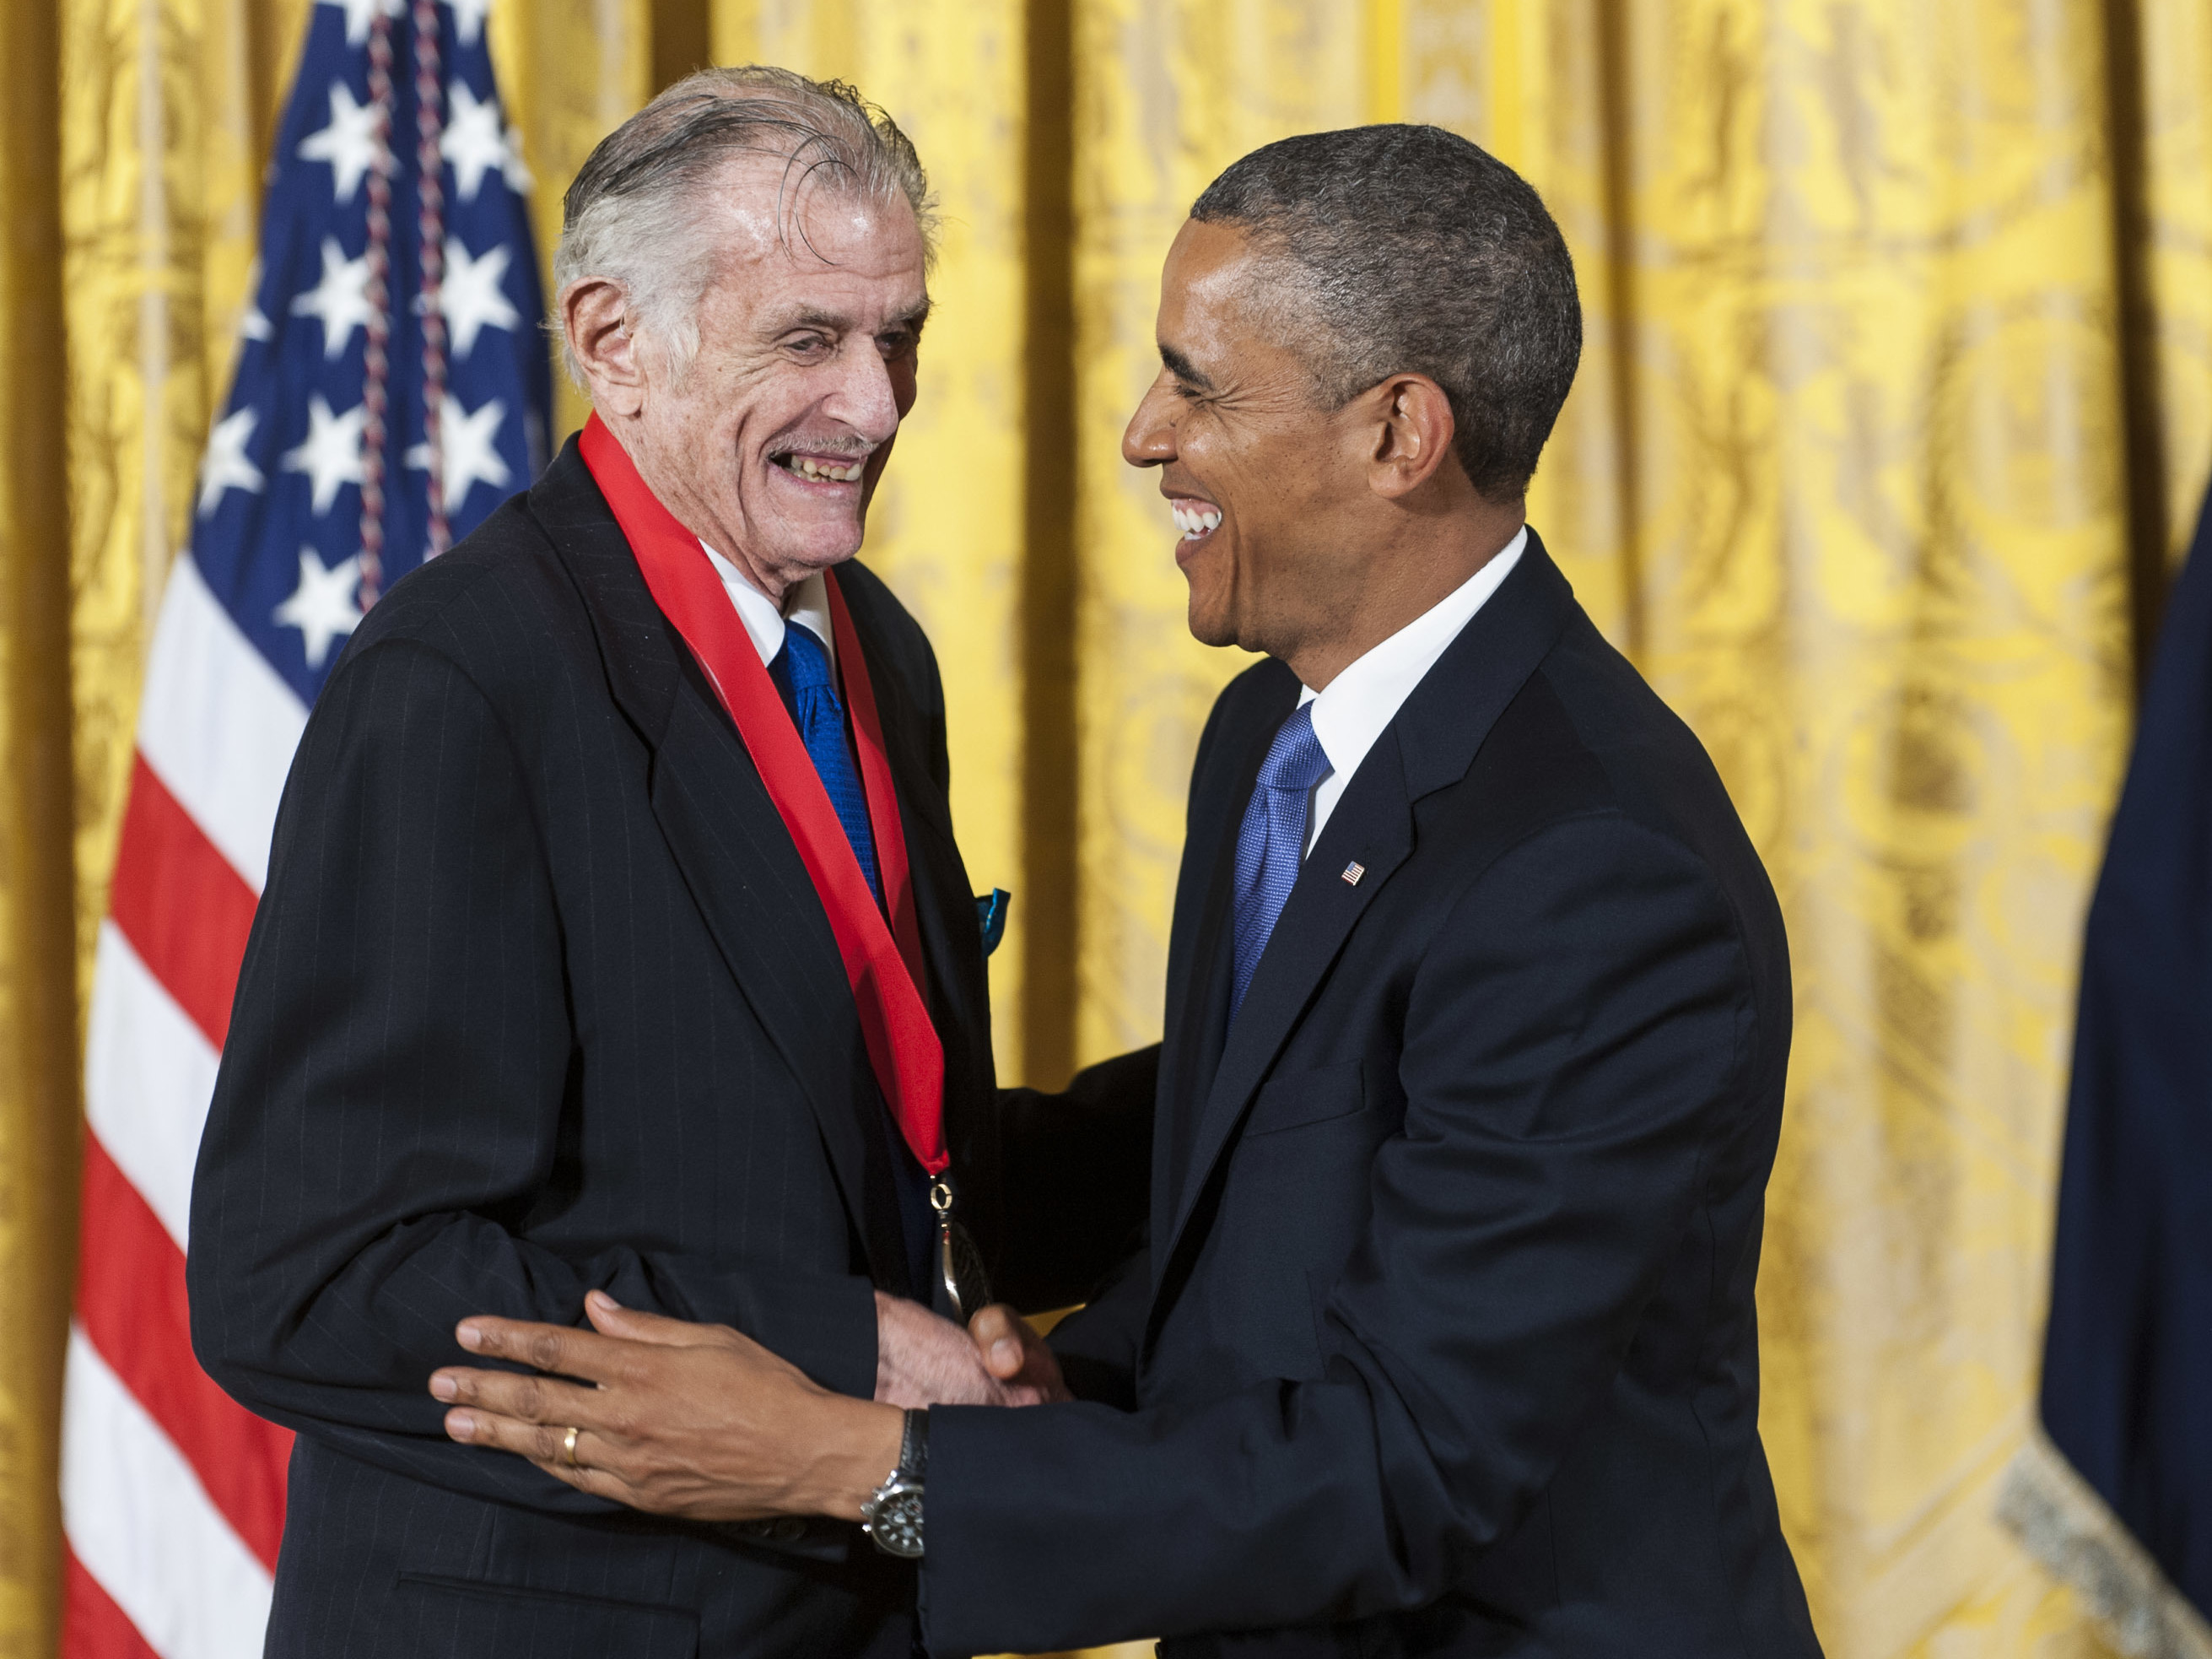 President Obama presents the National Humanities Medal to Frank Deford at the White House in 2013. (Pete Marovich/Getty Images)